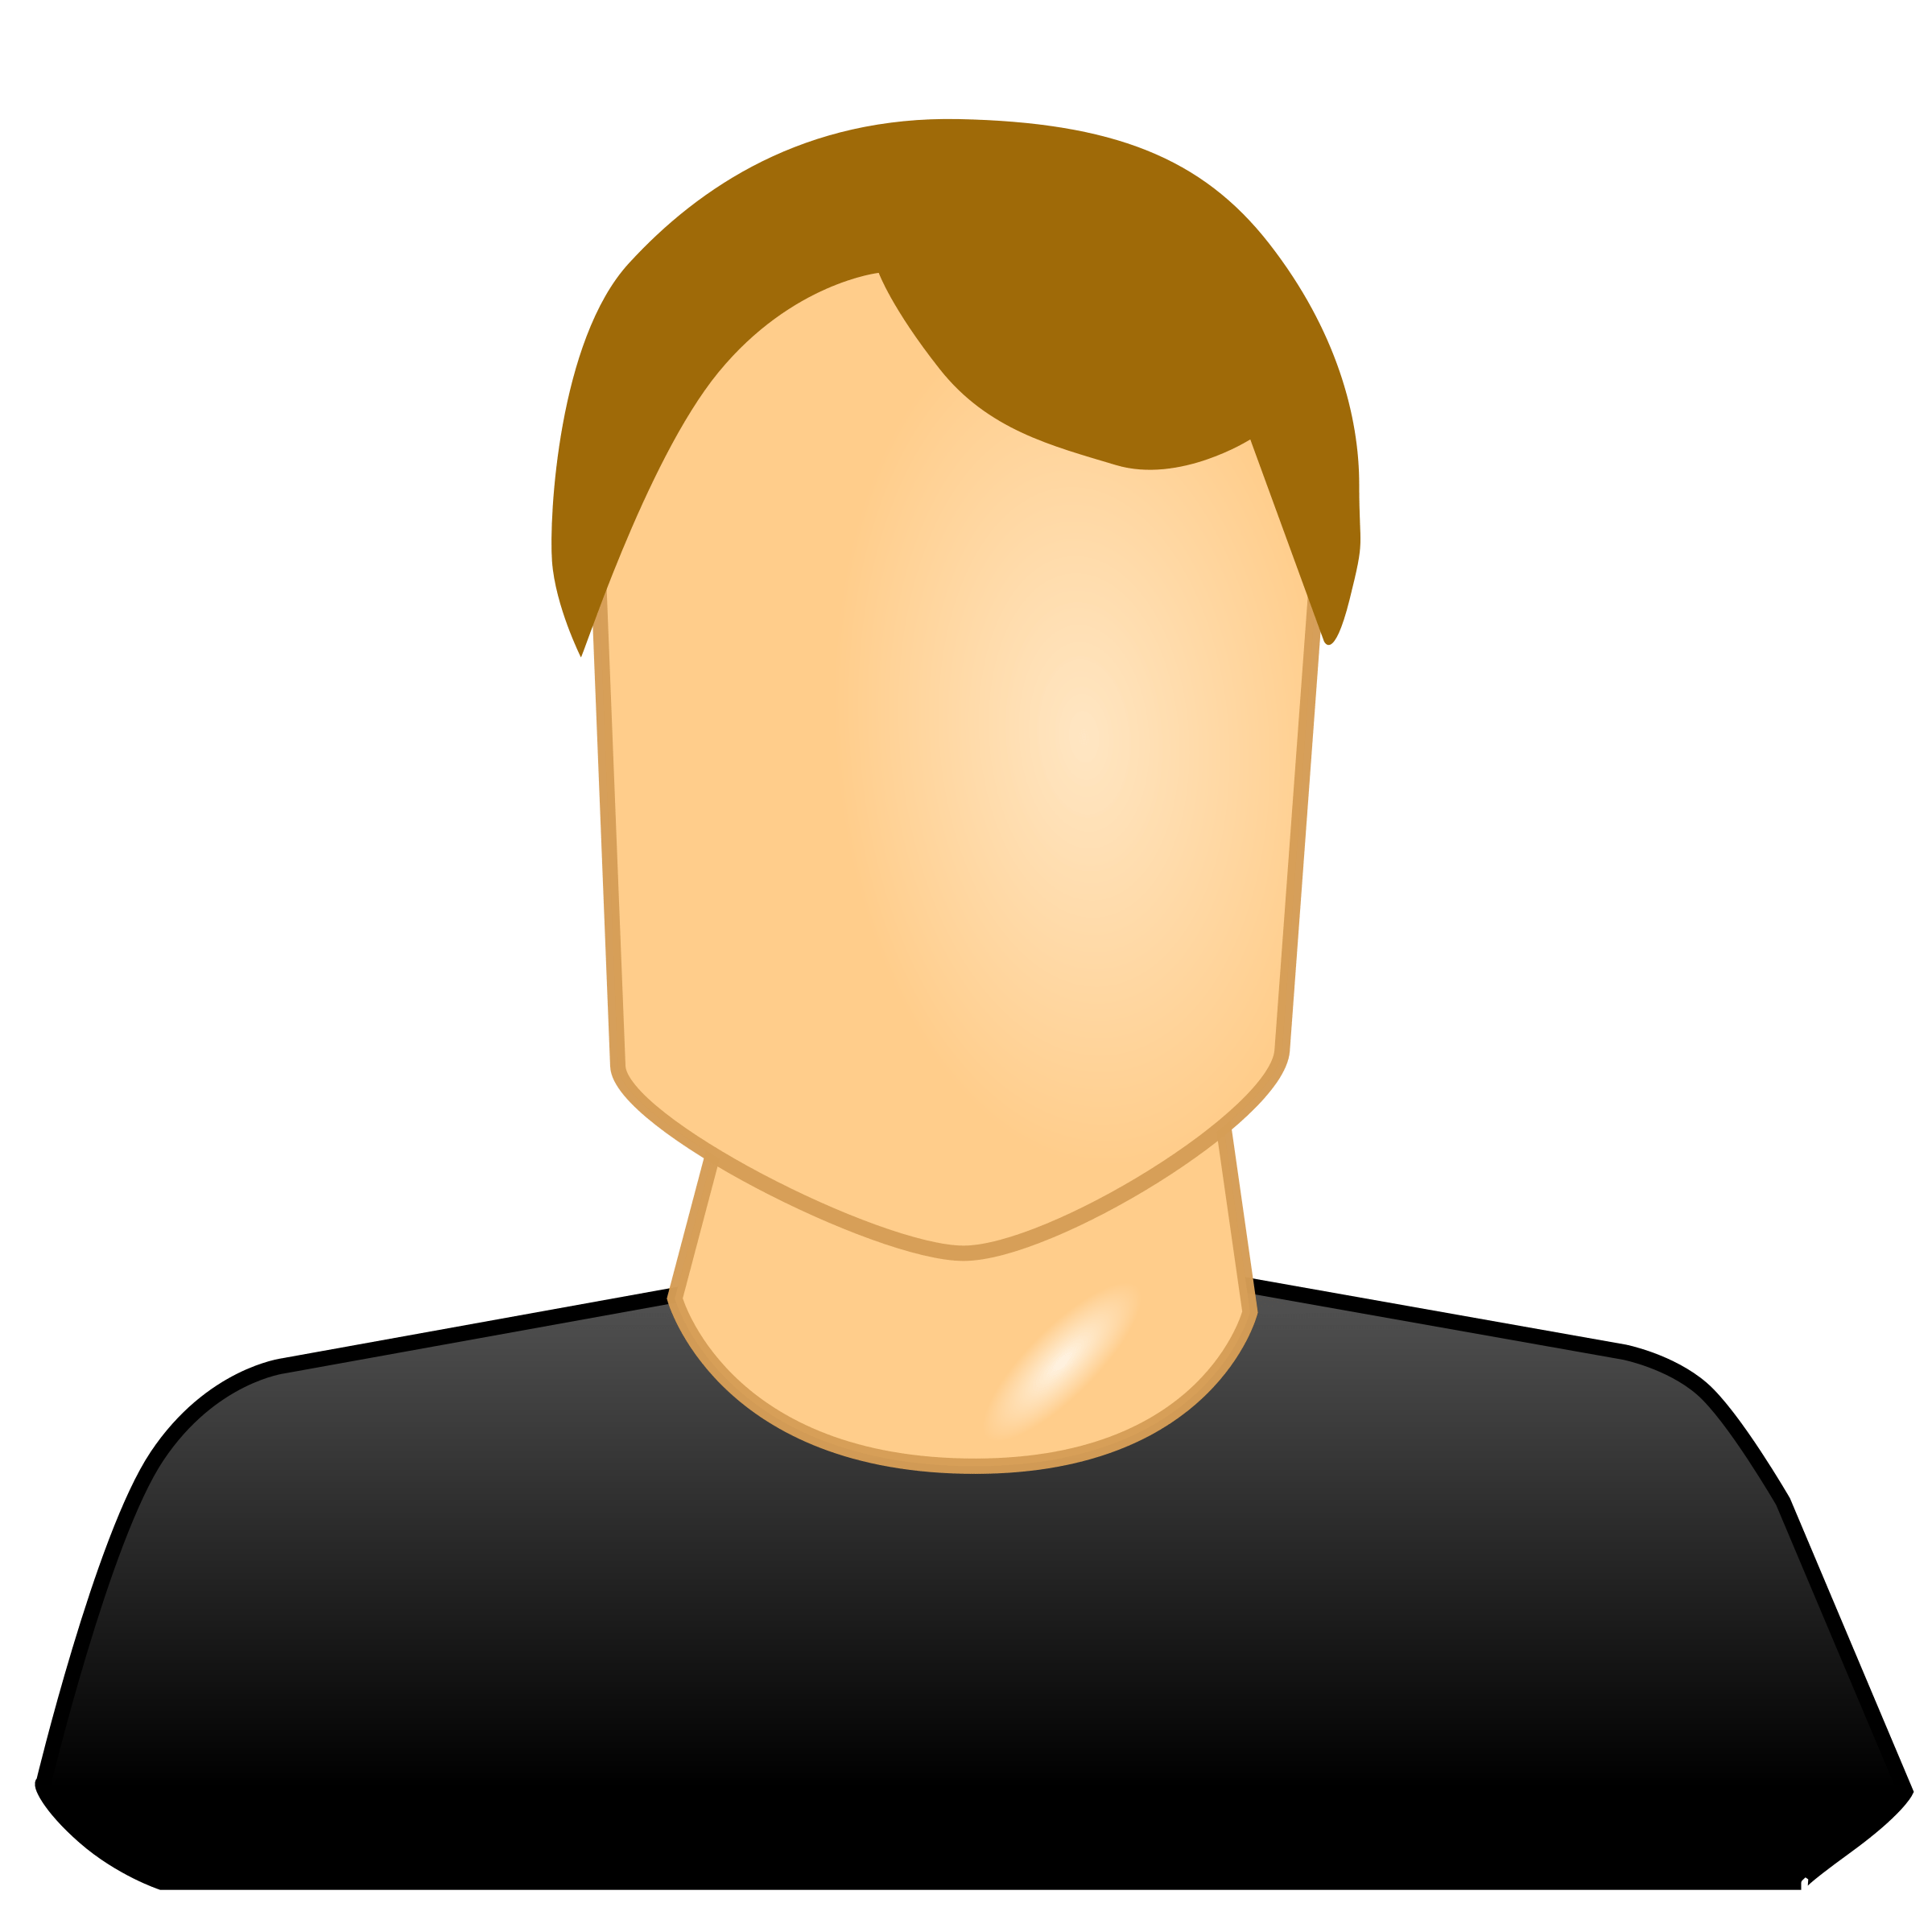 Male clipart transparent. User icon png stickpng